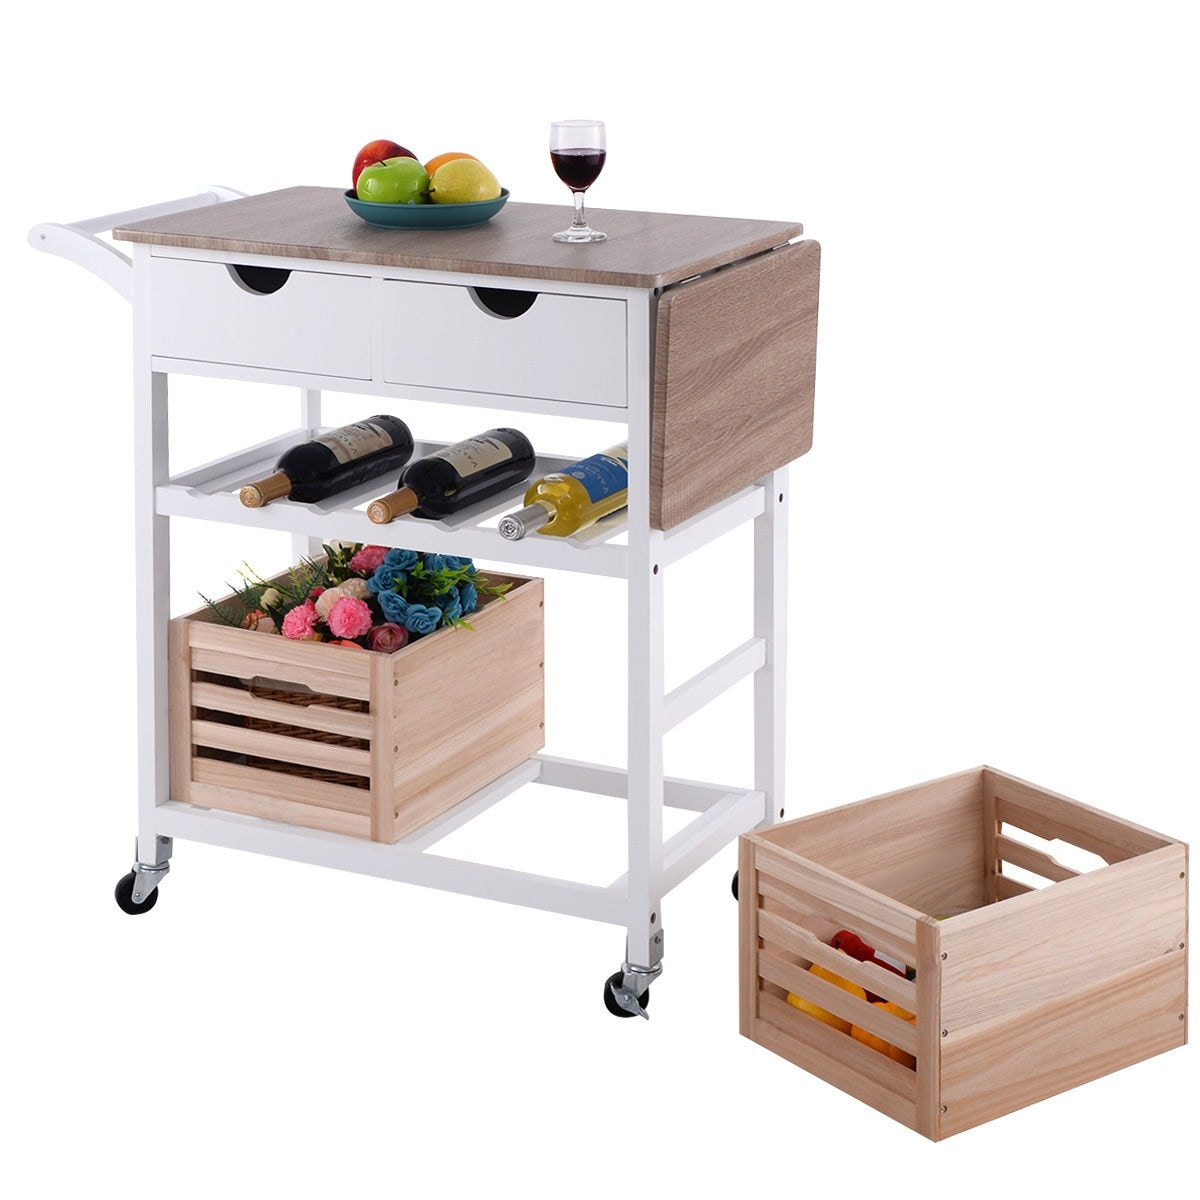 Costway rolling kitchen trolley island cart drop leaf w storage costway rolling kitchen trolley island cart drop leaf w storage drawer basket wine rack free shipping today overstock 24568317 workwithnaturefo